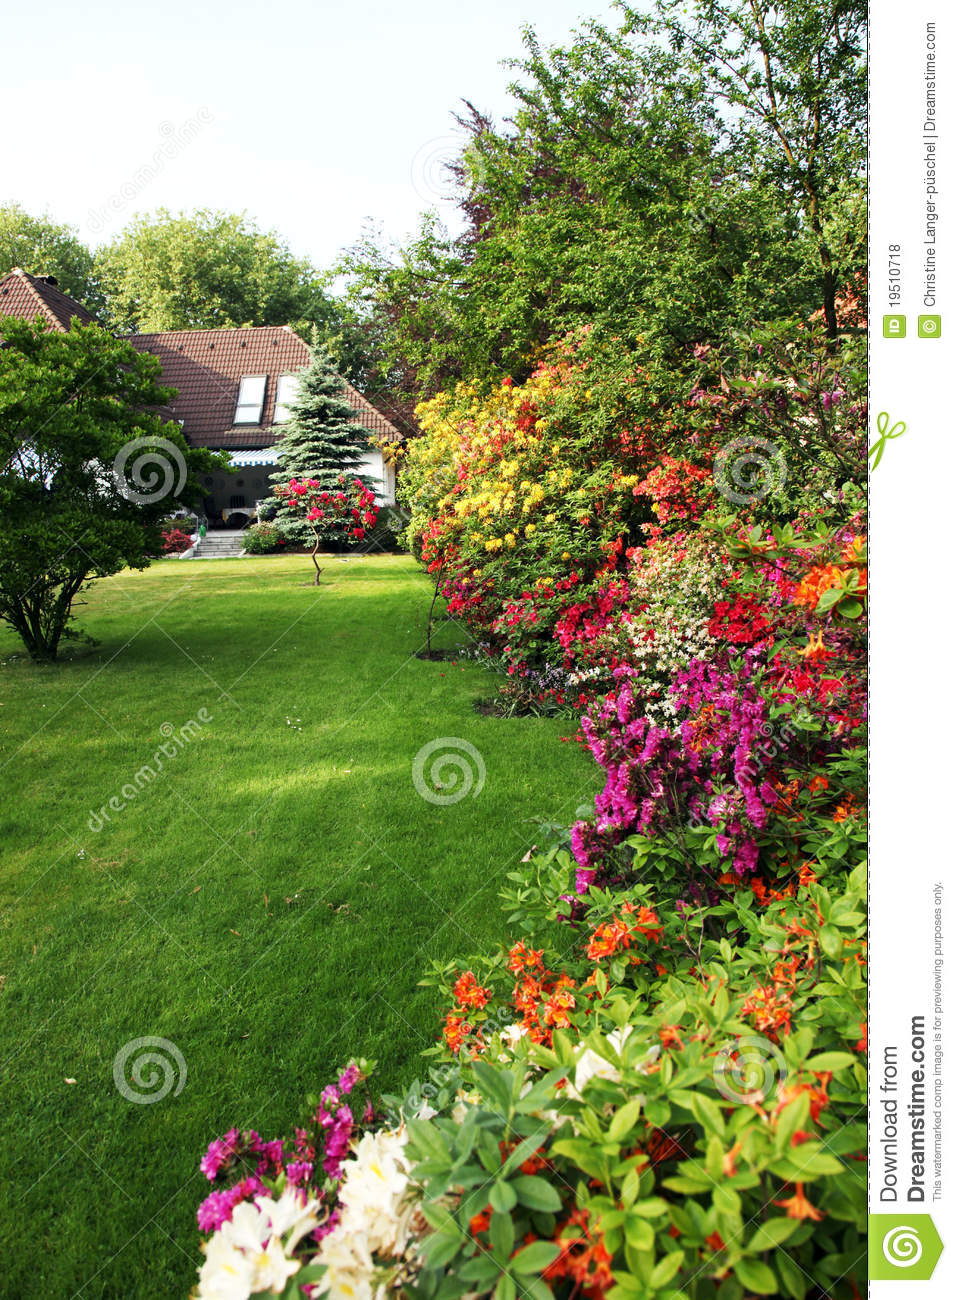 House with flower garden royalty free stock photos image for Garden in the house